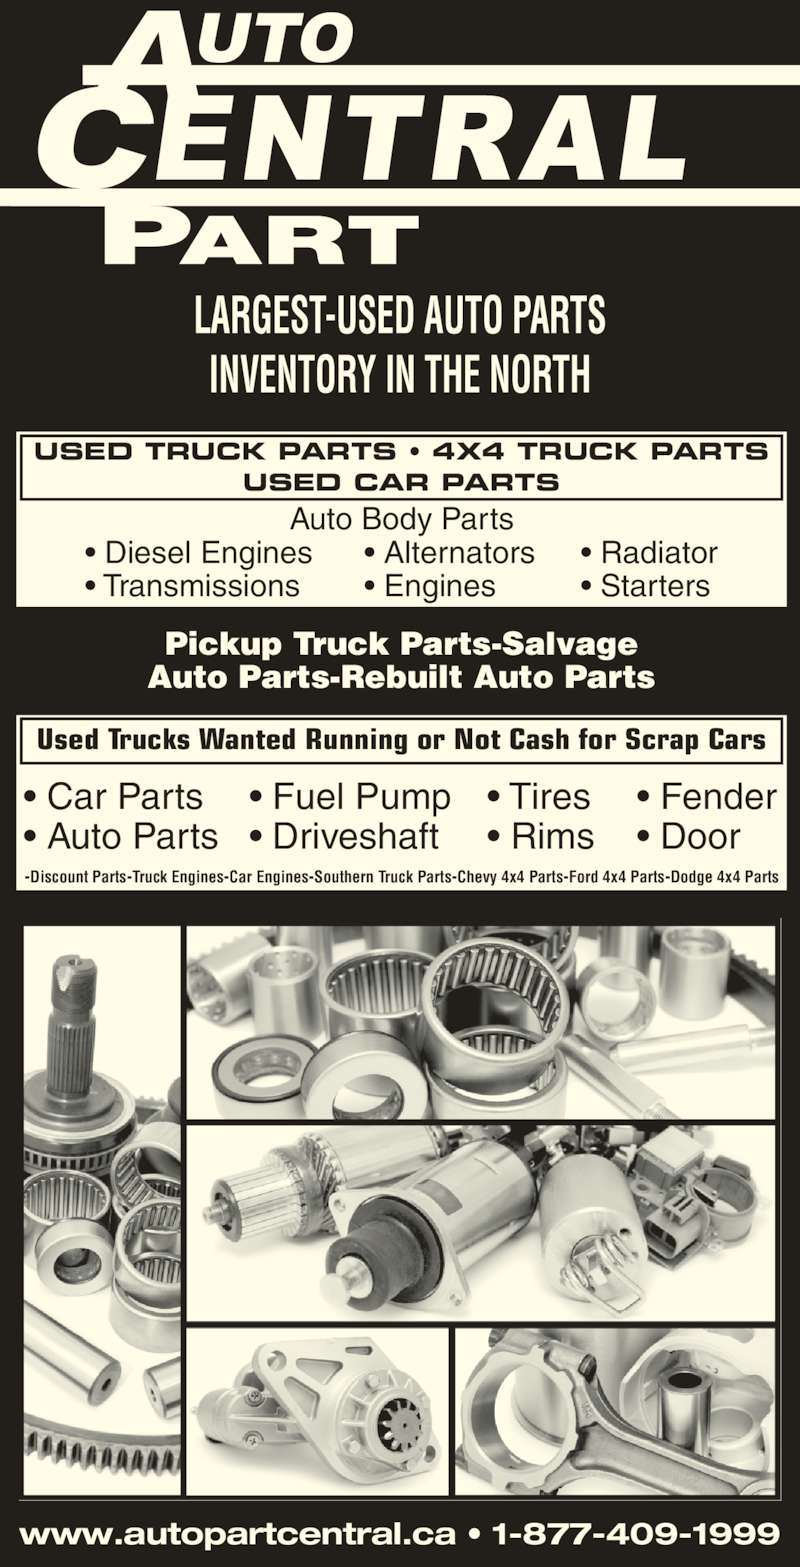 Auto Part Central (705-474-7130) - Display Ad - LARGEST-USED AUTO PARTS INVENTORY IN THE NORTH www.autopartcentral.ca • 1-877-409-1999 Pickup Truck Parts-Salvage Auto Parts-Rebuilt Auto Parts -Discount Parts-Truck Engines-Car Engines-Southern Truck Parts-Chevy 4x4 Parts-Ford 4x4 Parts-Dodge 4x4 Parts USED TRUCK PARTS • 4X4 TRUCK PARTS USED CAR PARTS Used Trucks Wanted Running or Not Cash for Scrap Cars Auto Body Parts • Diesel Engines • Transmissions • Alternators • Engines • Radiator • Starters • Car Parts • Auto Parts • Tires • Rims • Fuel Pump • Driveshaft • Fender • Door